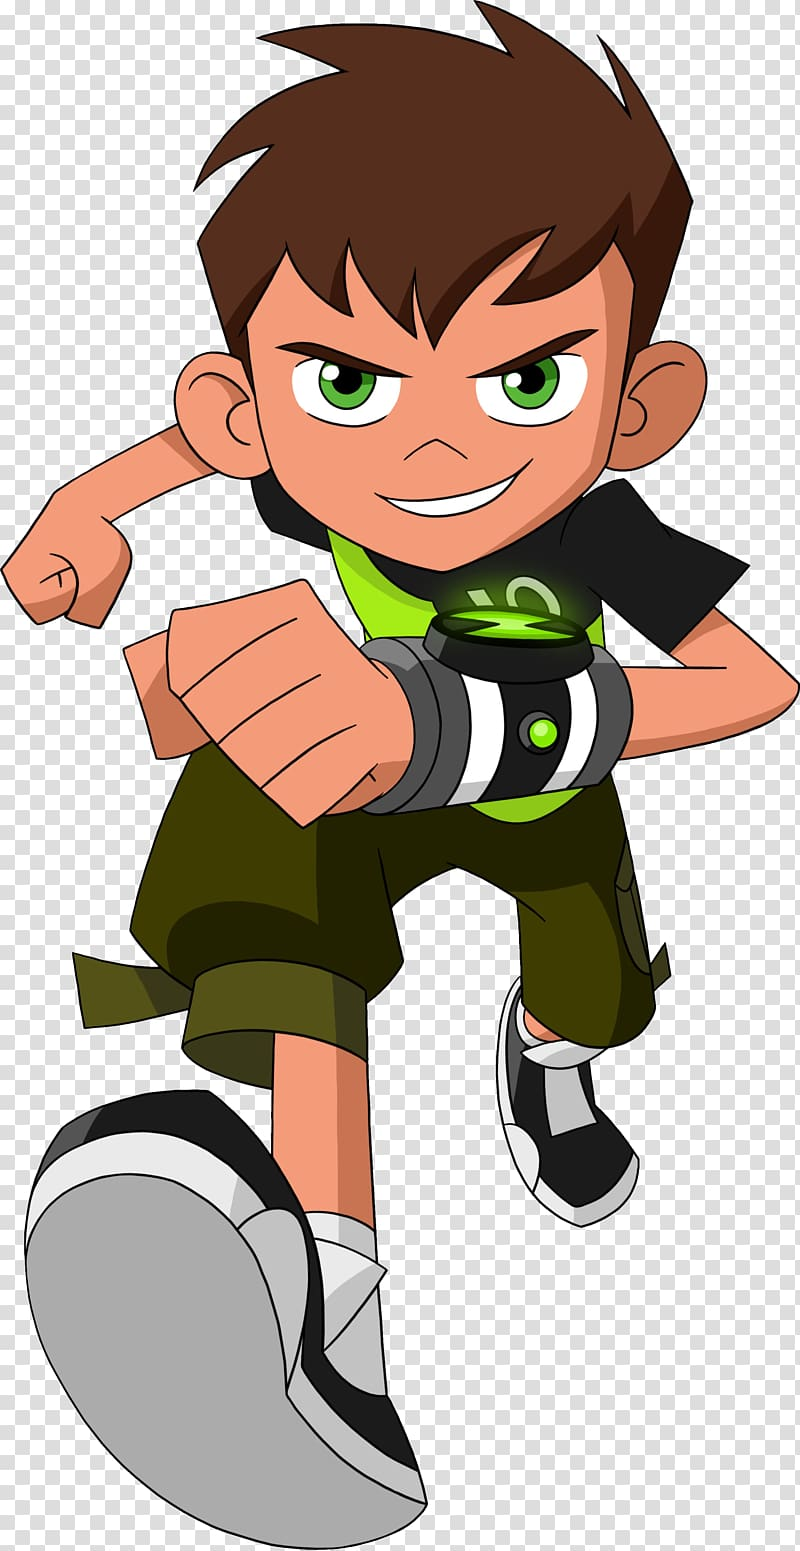 Ben 10 Cartoon Network Television show Reboot Animated.